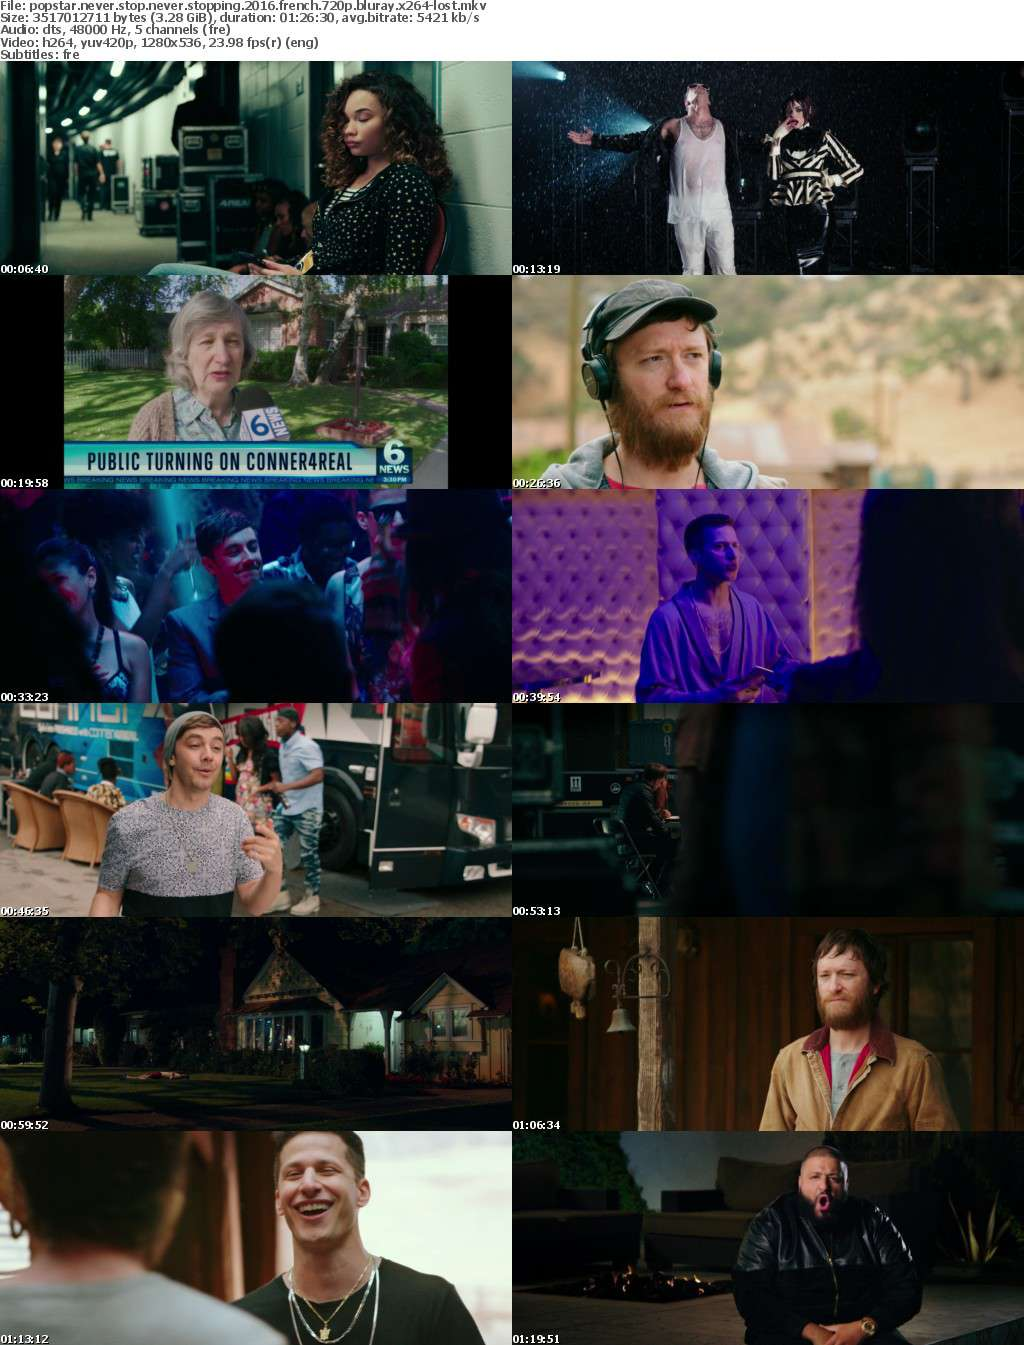 Popstar Never Stop Never Stopping 2016 FRENCH 720p BluRay x264-LOST